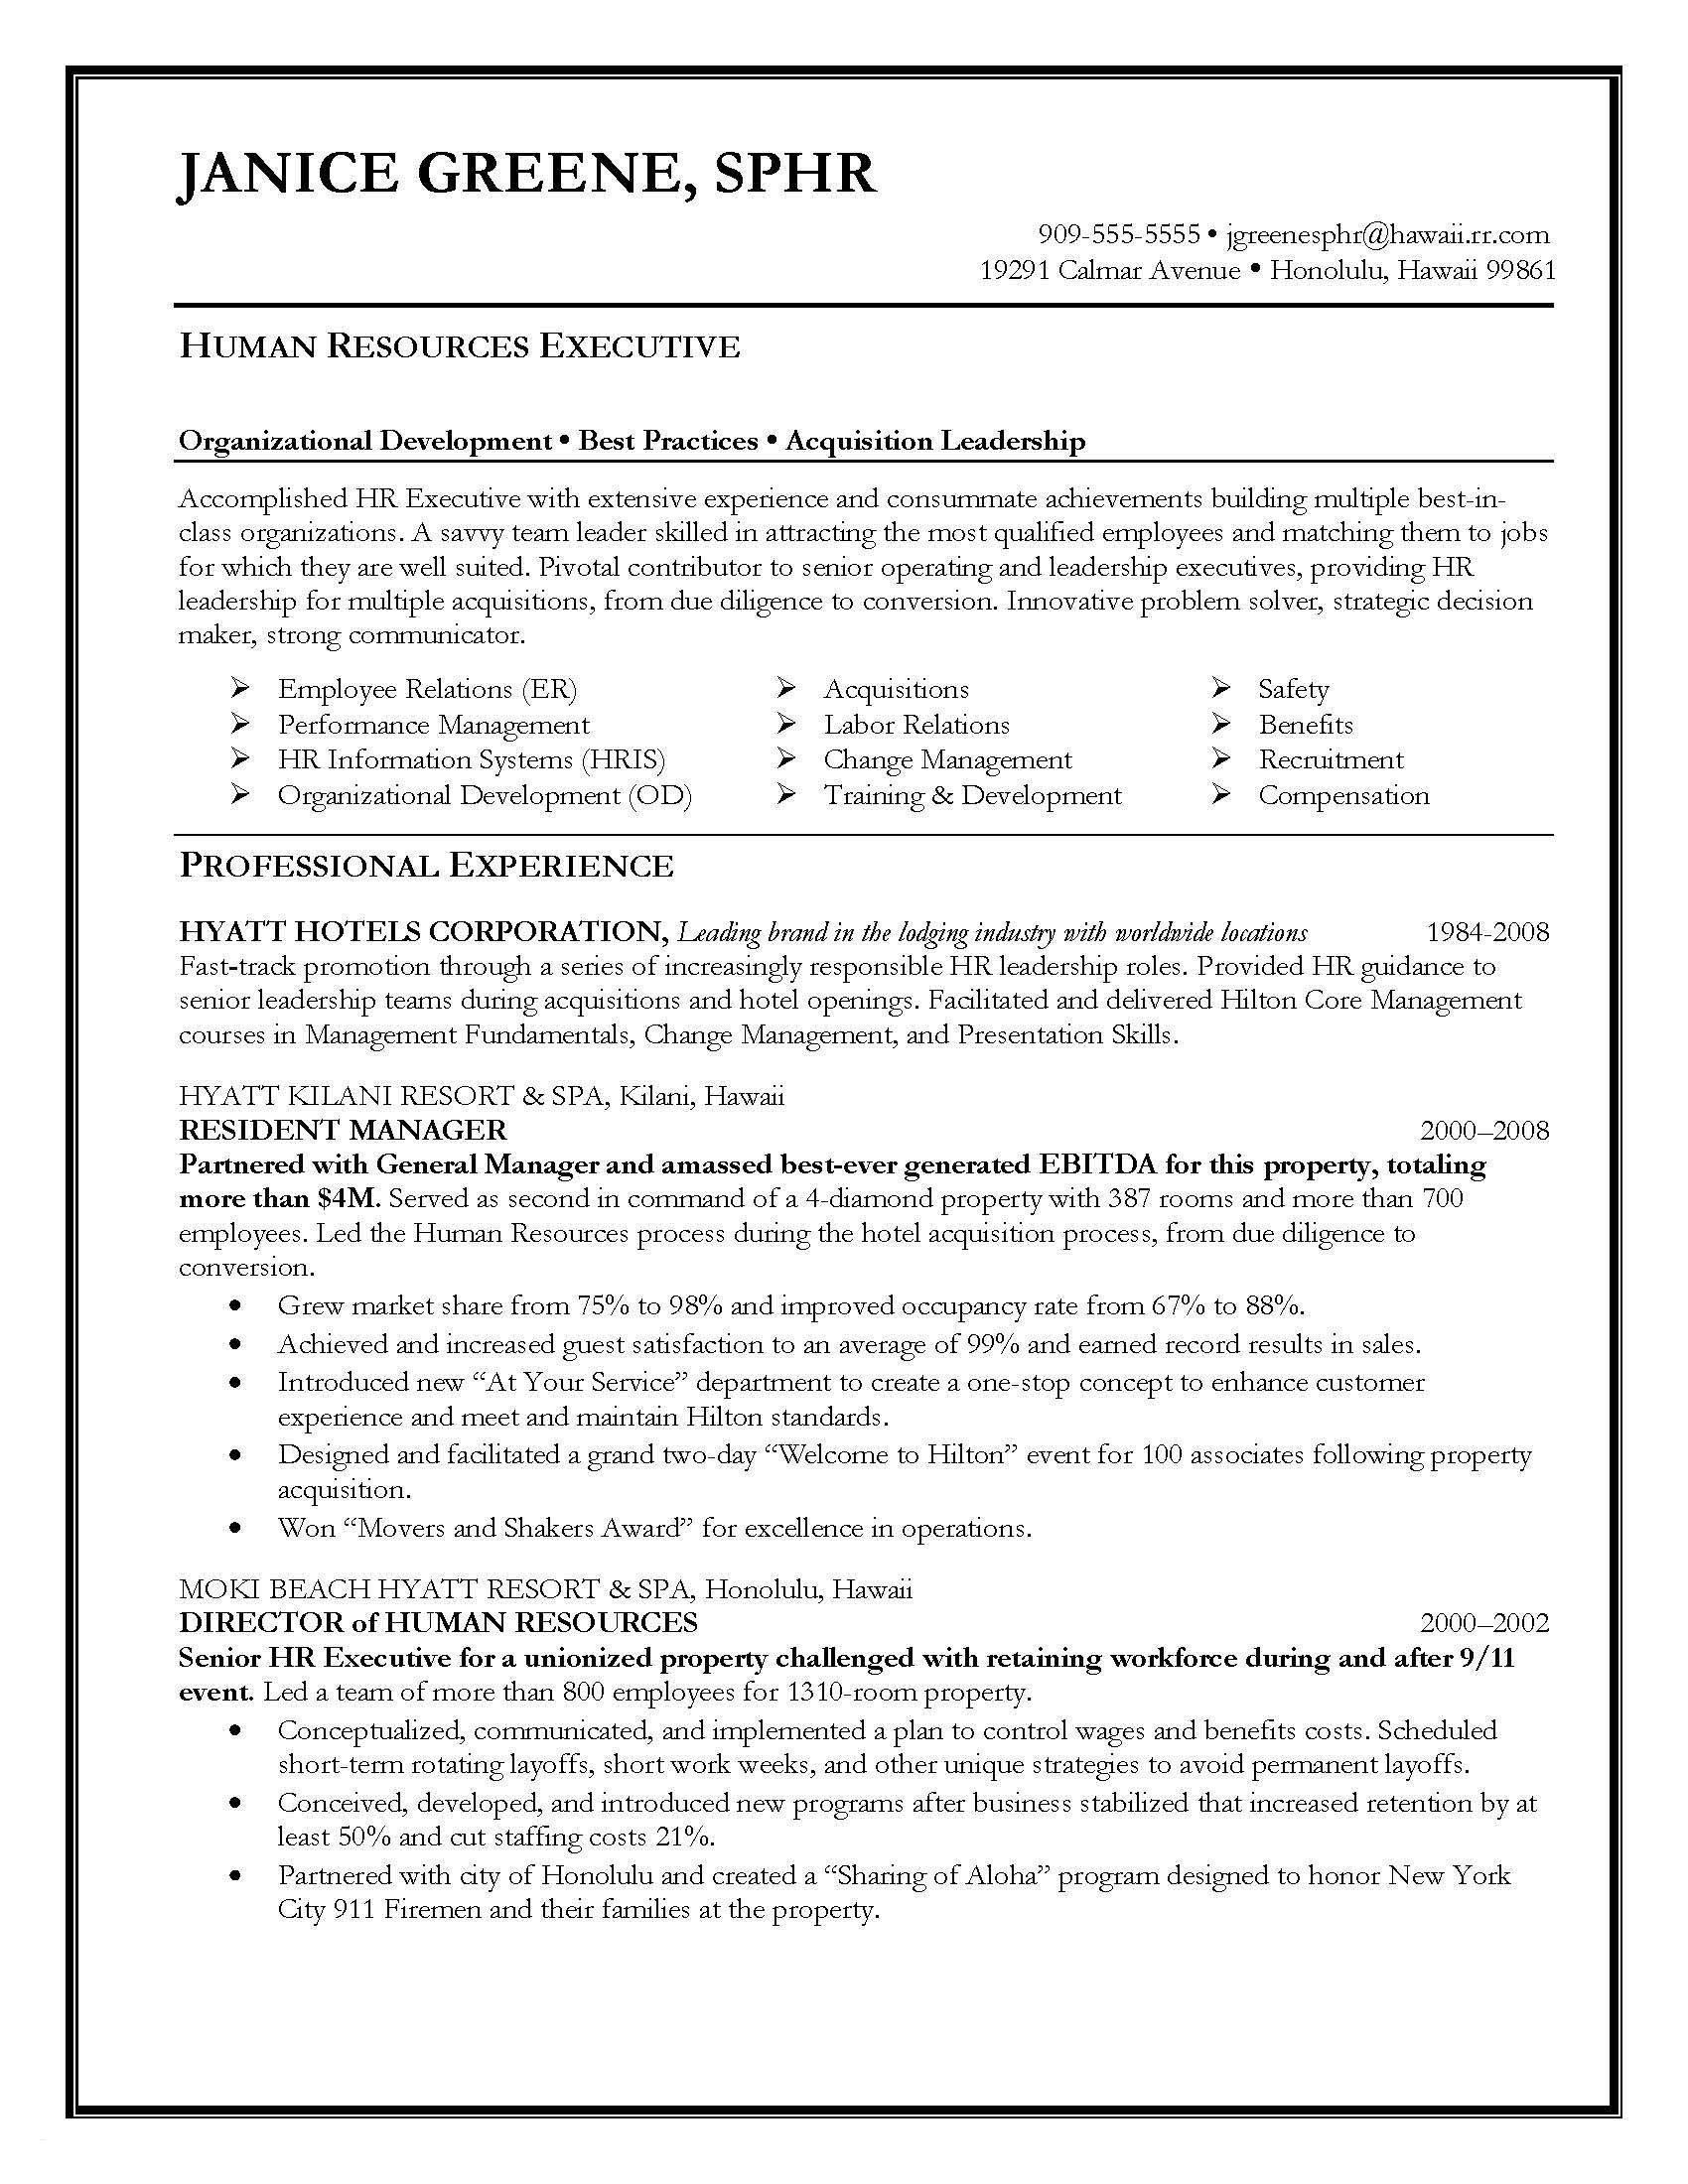 Best Professional Resume Writers - 25 Technical Resume Writer